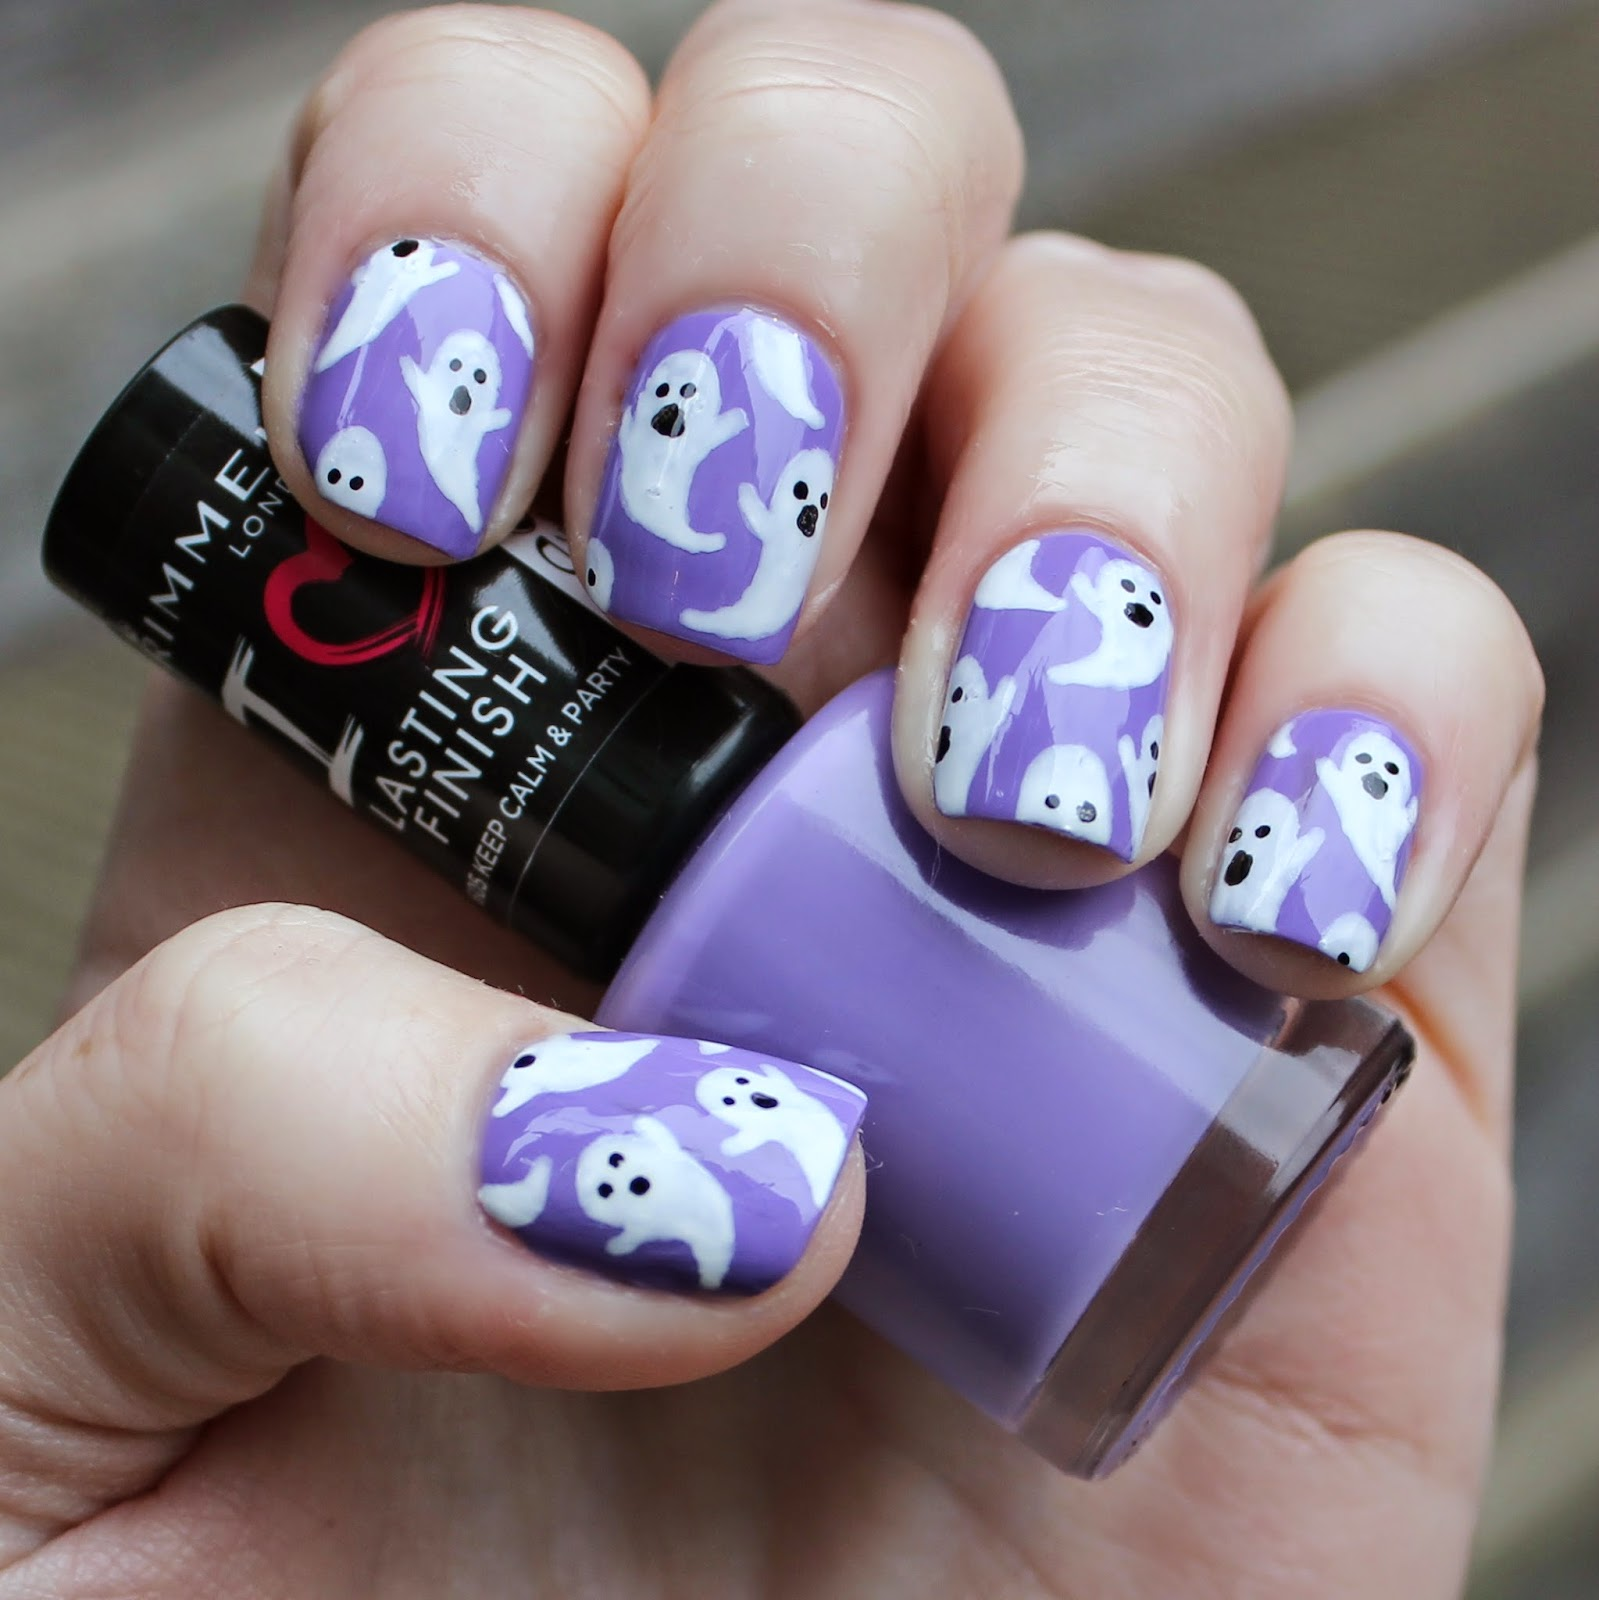 Dahlia Nails: Cute Ghost Nails For Hallowe'en